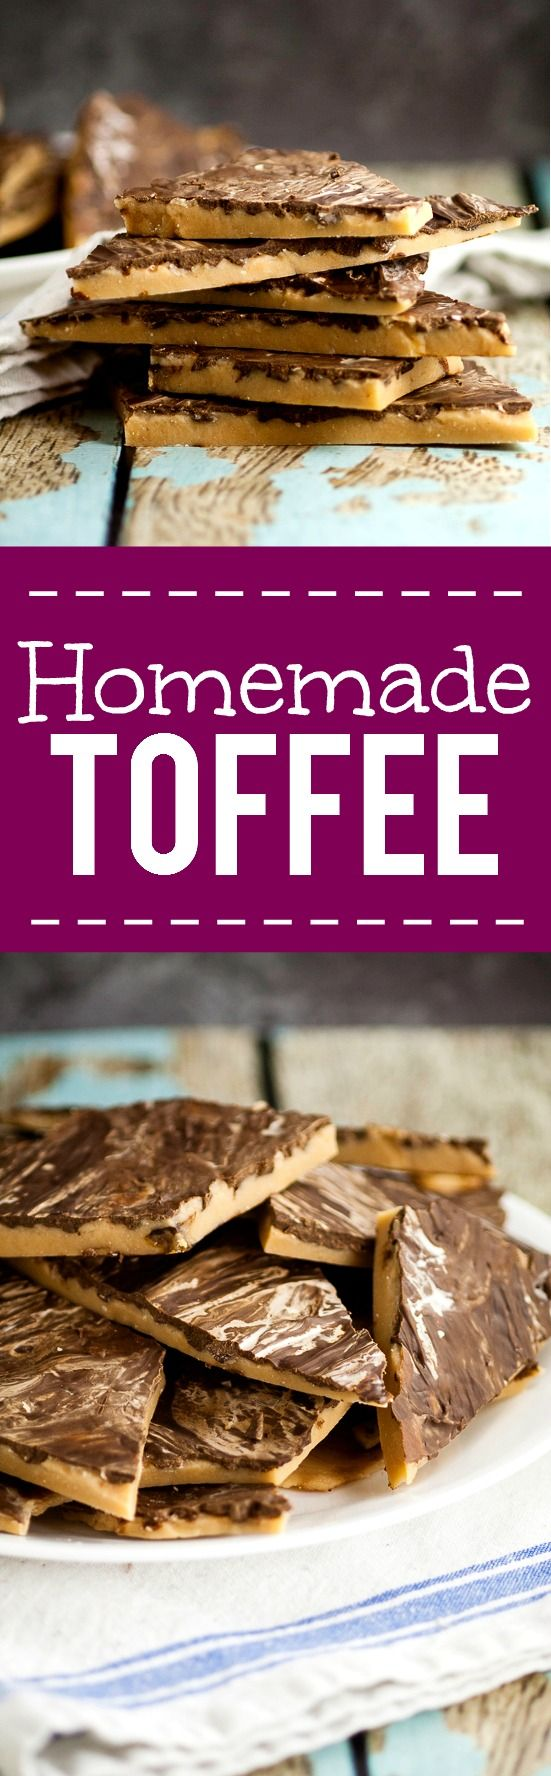 Homemade Toffee Recipe - Who knew making homemade chocolate toffee could be so easy?! With just 4 ingredients, you can make your own sweet, crunchy and delicious toffee to enjoy! This is seriously so good it's like crack!